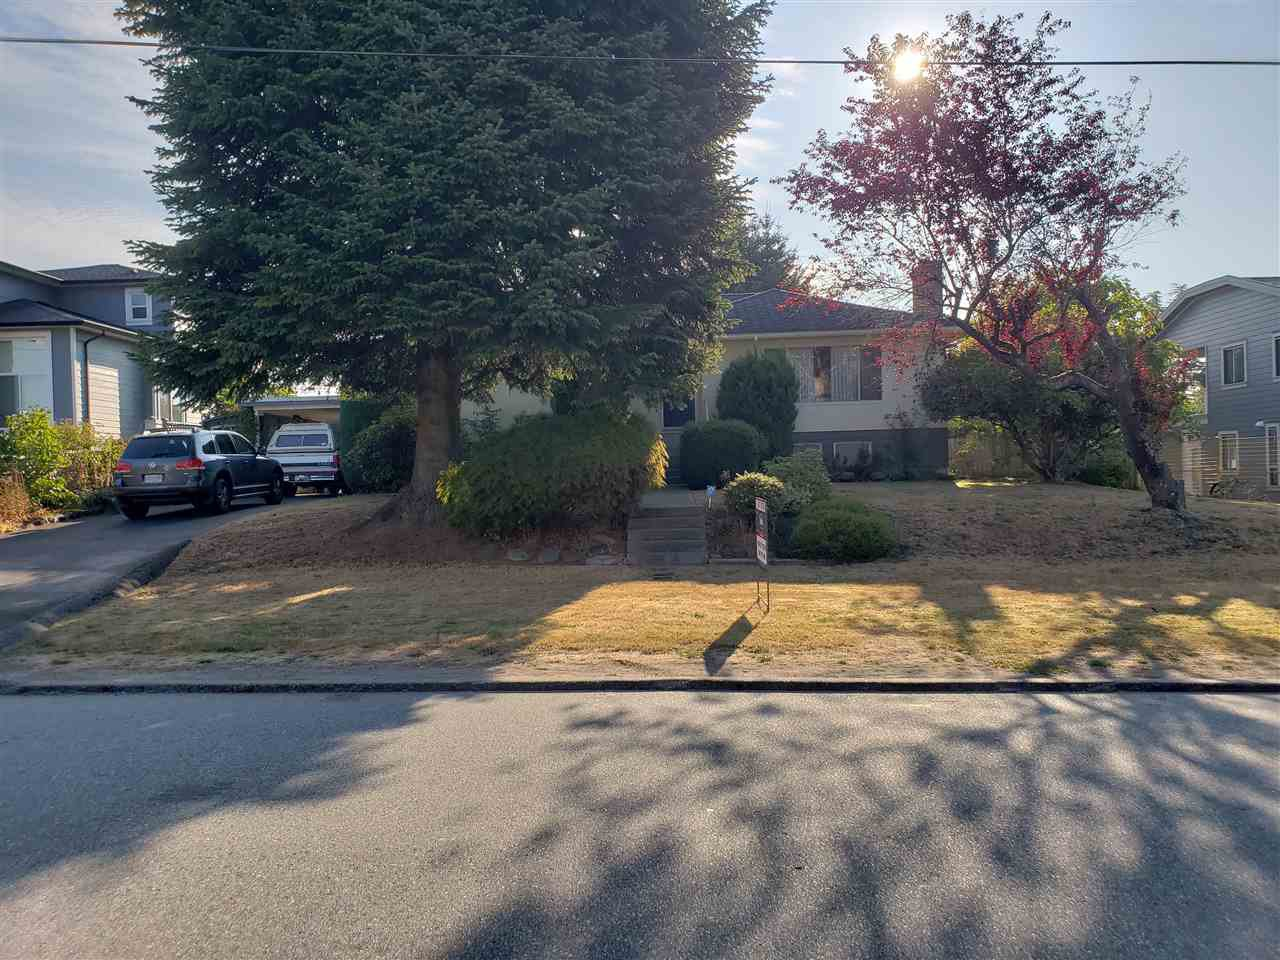 Main Photo: 4336 CARLETON Avenue in Burnaby: Burnaby Hospital House for sale (Burnaby South)  : MLS®# R2305007